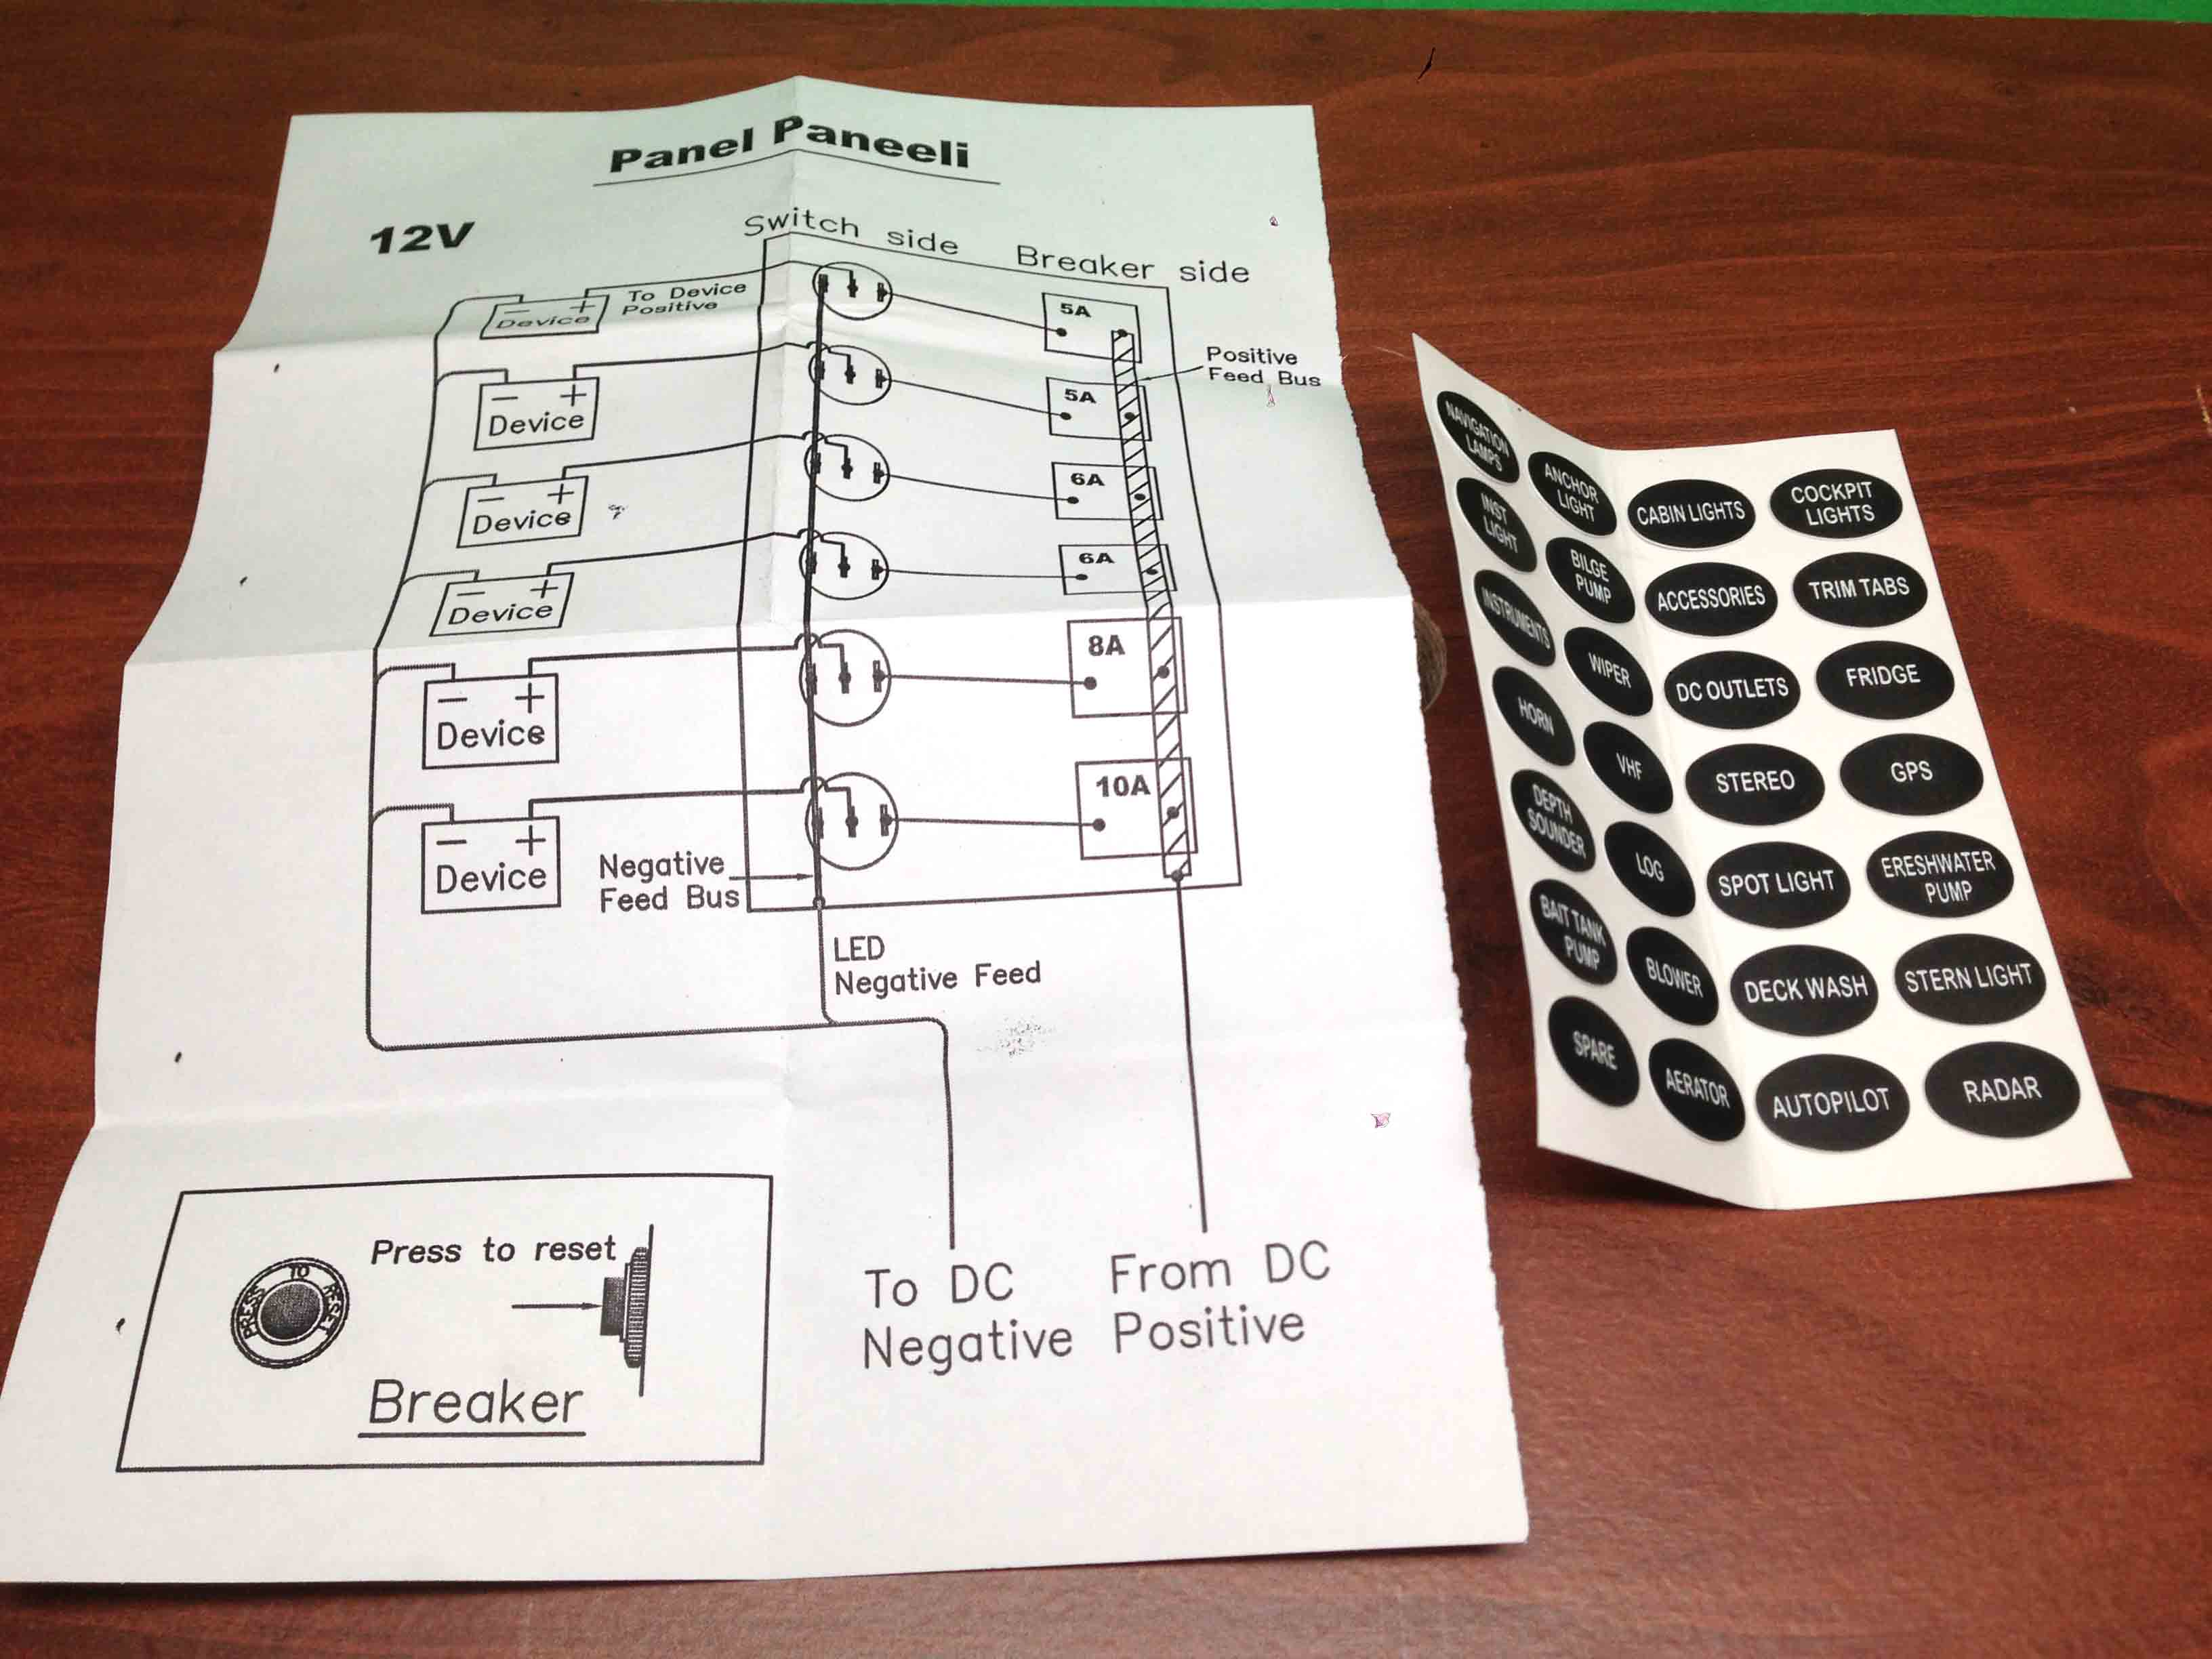 boat accessory switch panel wiring diagram 1992 s10 radio marine ip65 6 gang led switches circuit breaker brea